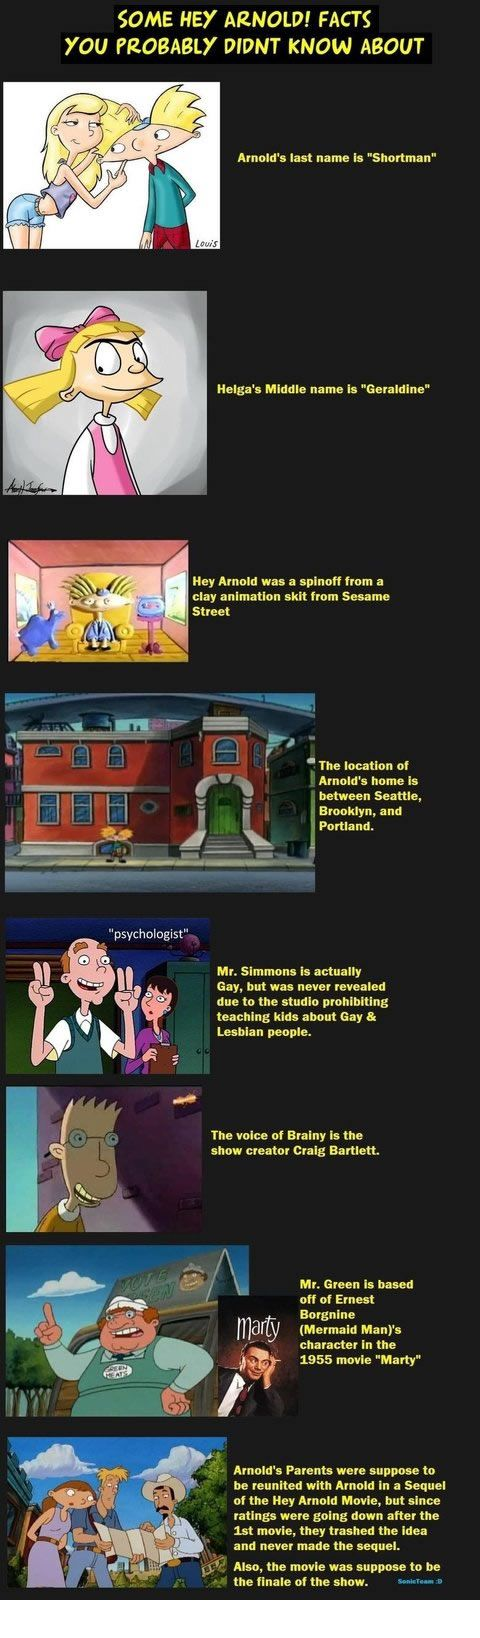 Hey Arnold facts. The last one makes me sad.): . this was my fav show growing up. (along with rugrats)